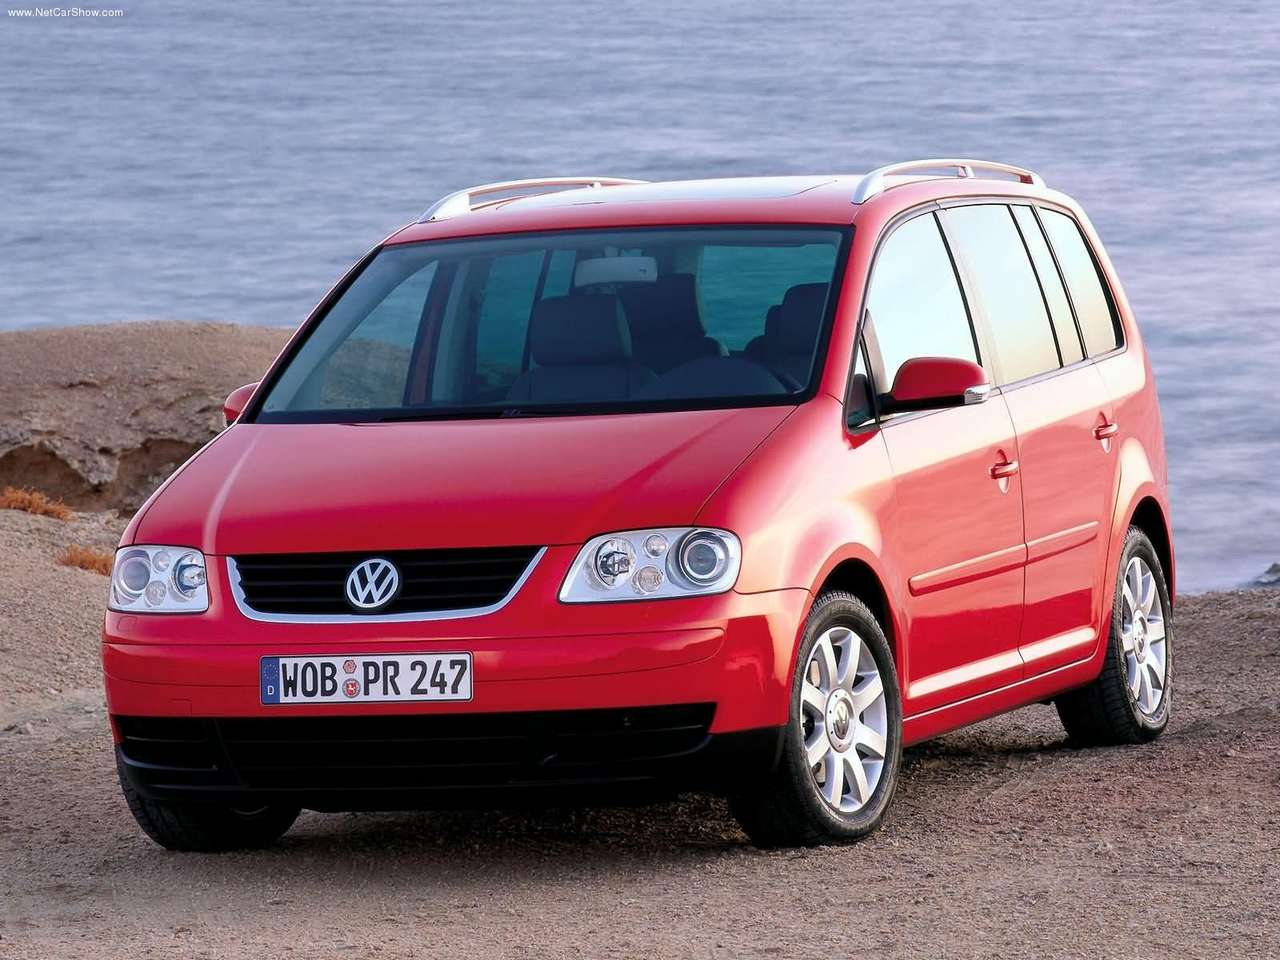 volkswagen touran specs 2003 2004 2005 2006. Black Bedroom Furniture Sets. Home Design Ideas